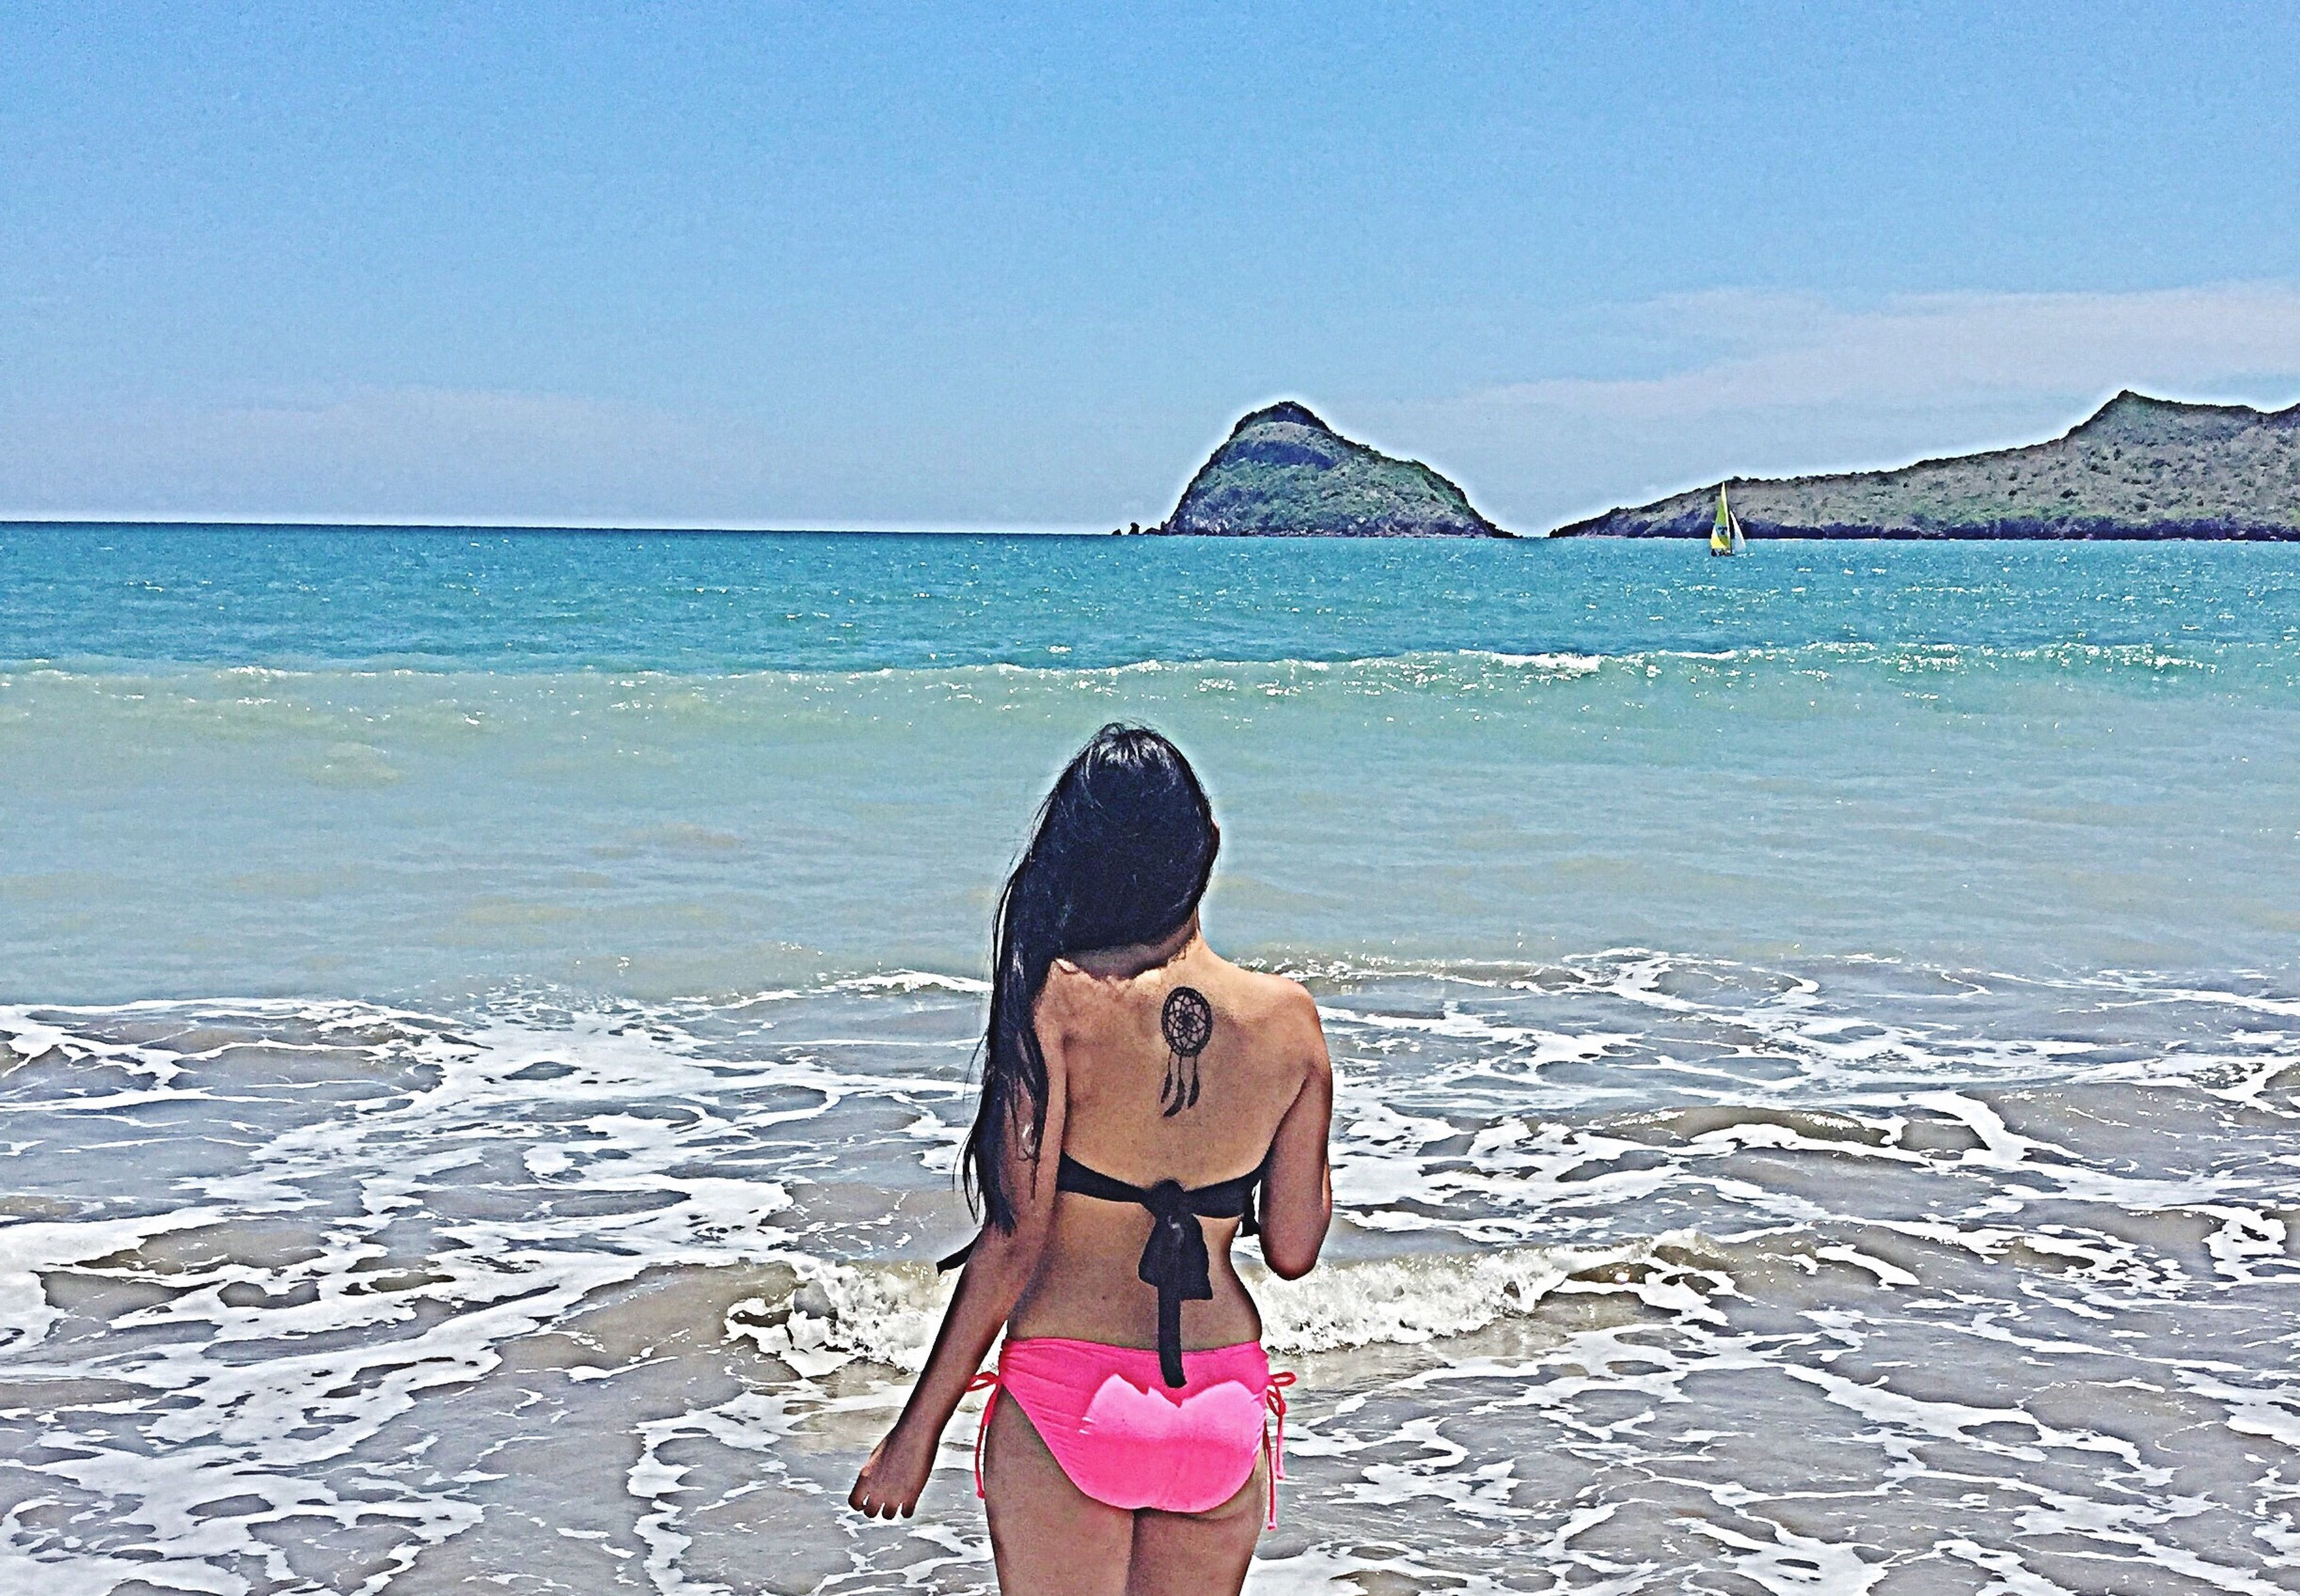 water, standing, lifestyles, sea, leisure activity, rear view, casual clothing, horizon over water, person, sky, three quarter length, scenics, tranquility, vacations, clear sky, waist up, young adult, beach